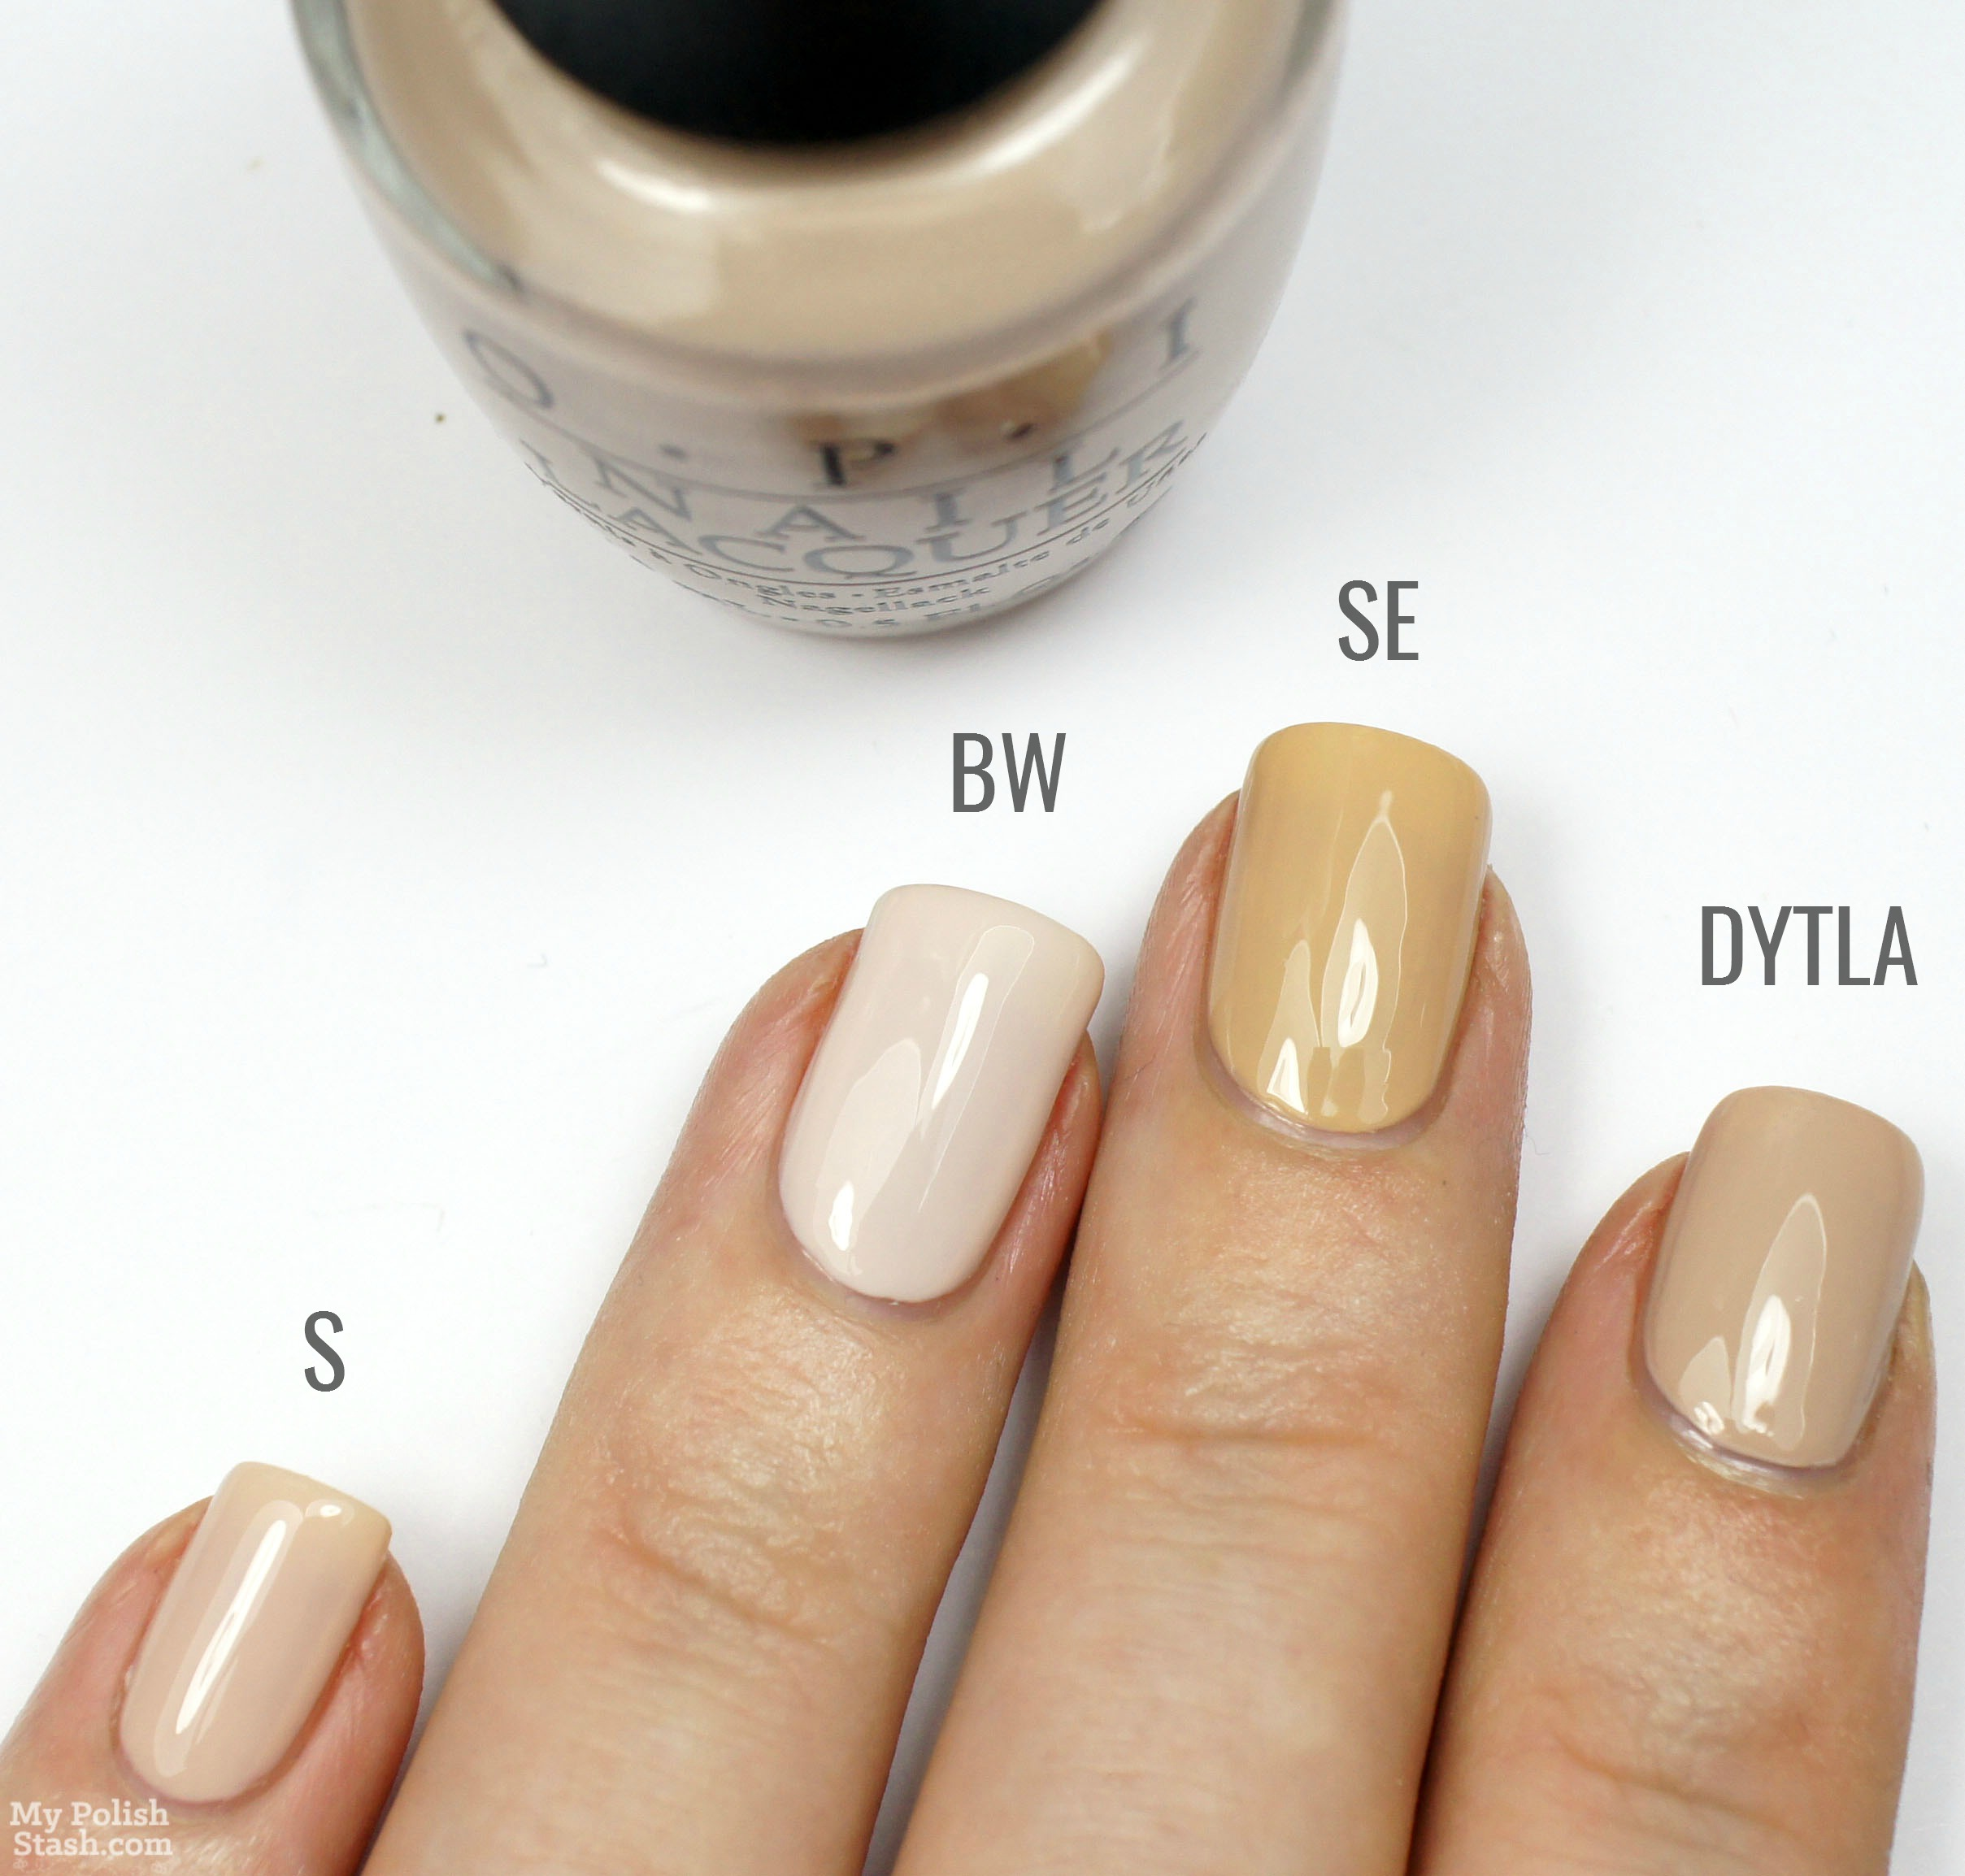 OPI-do-you-take-lei-away-dupes-comparison-4label